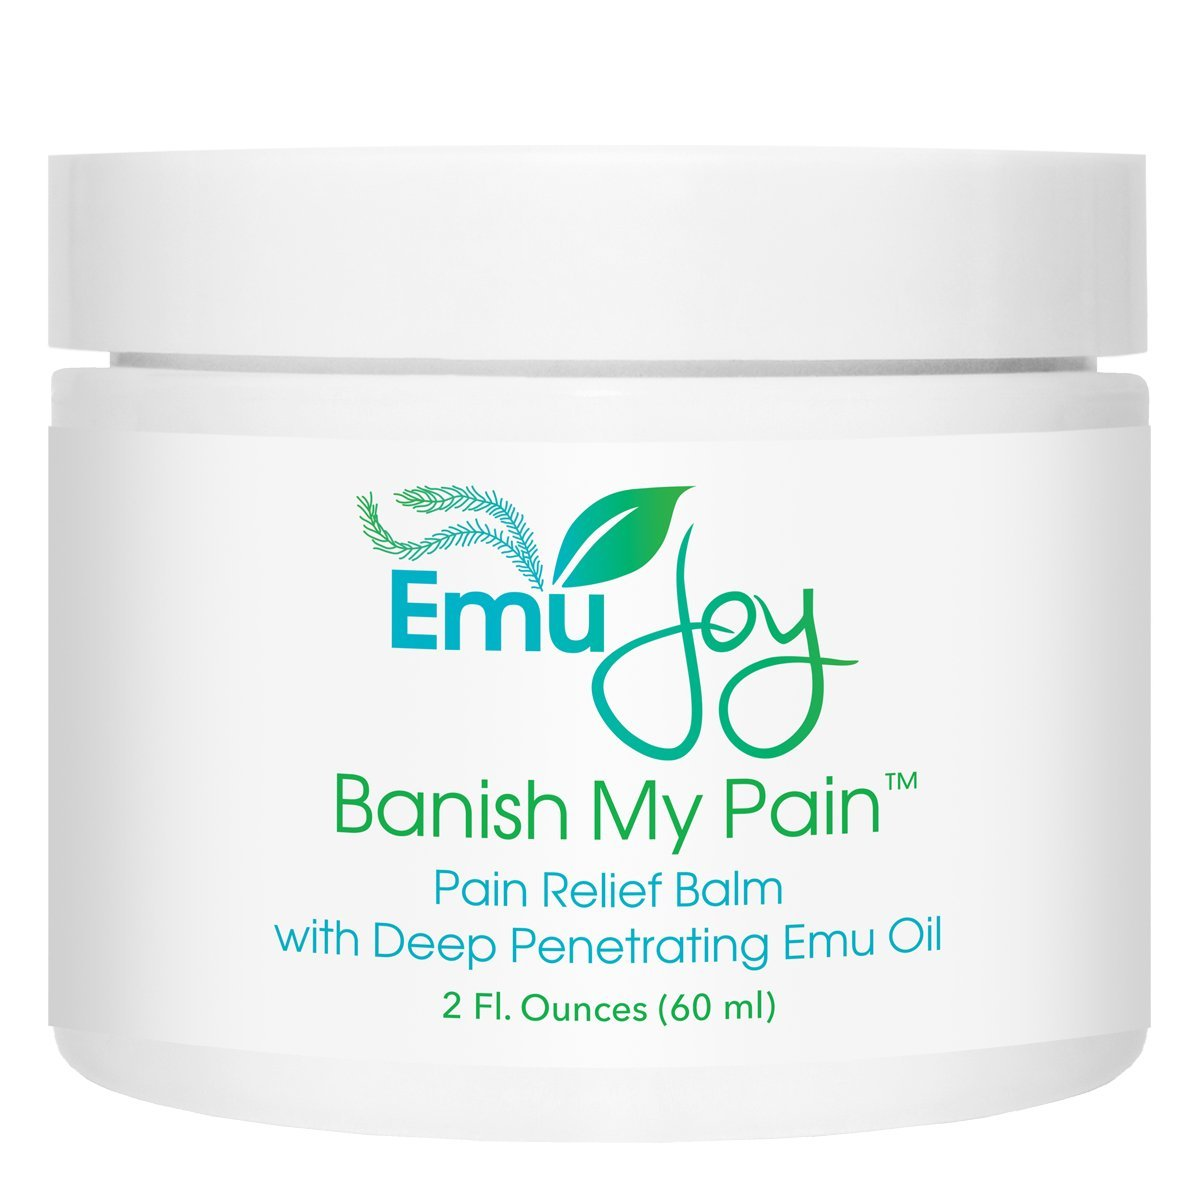 Banish My Pain Emu Oil and Arnica Balm - Concentrated Pain Relief for Joints and Muscles